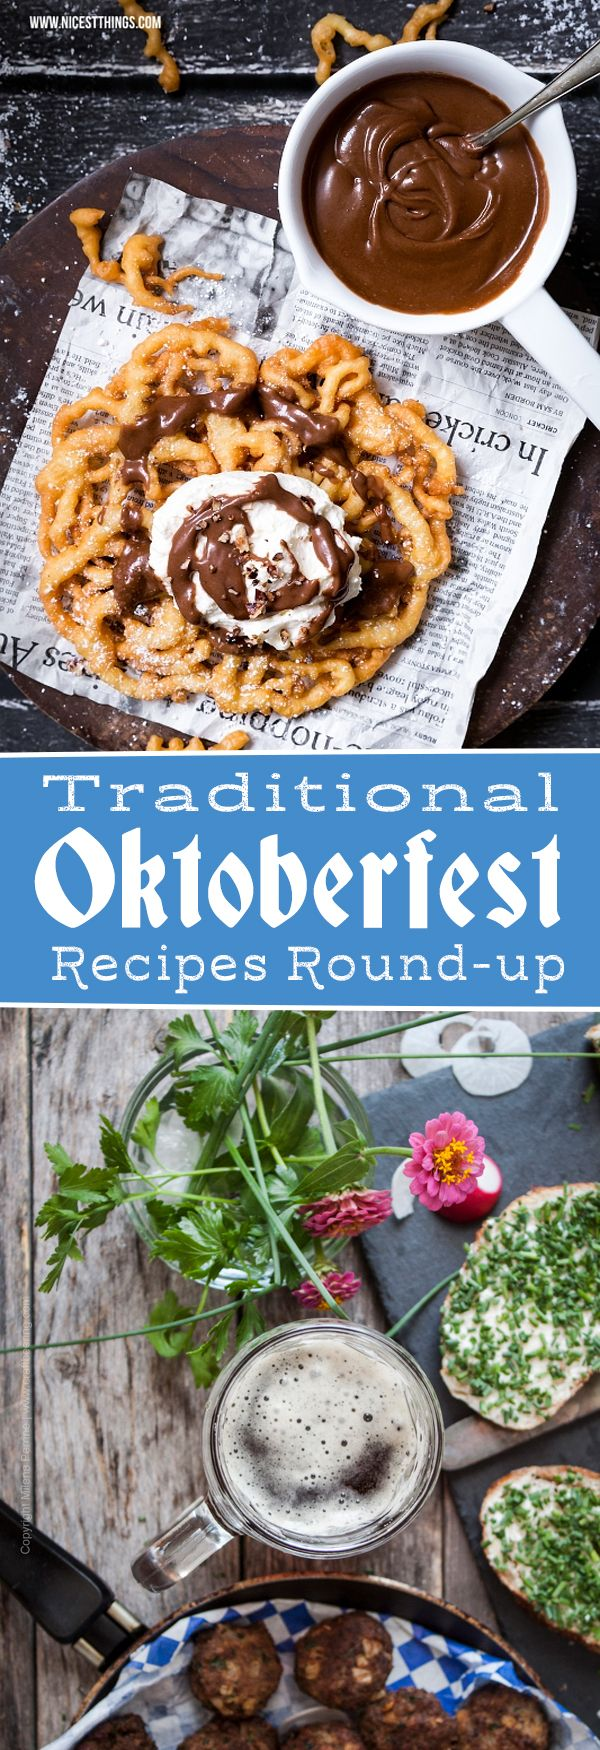 Oktoberfest Food Favorites – Traditional Appetizers, Entrees and Desserts